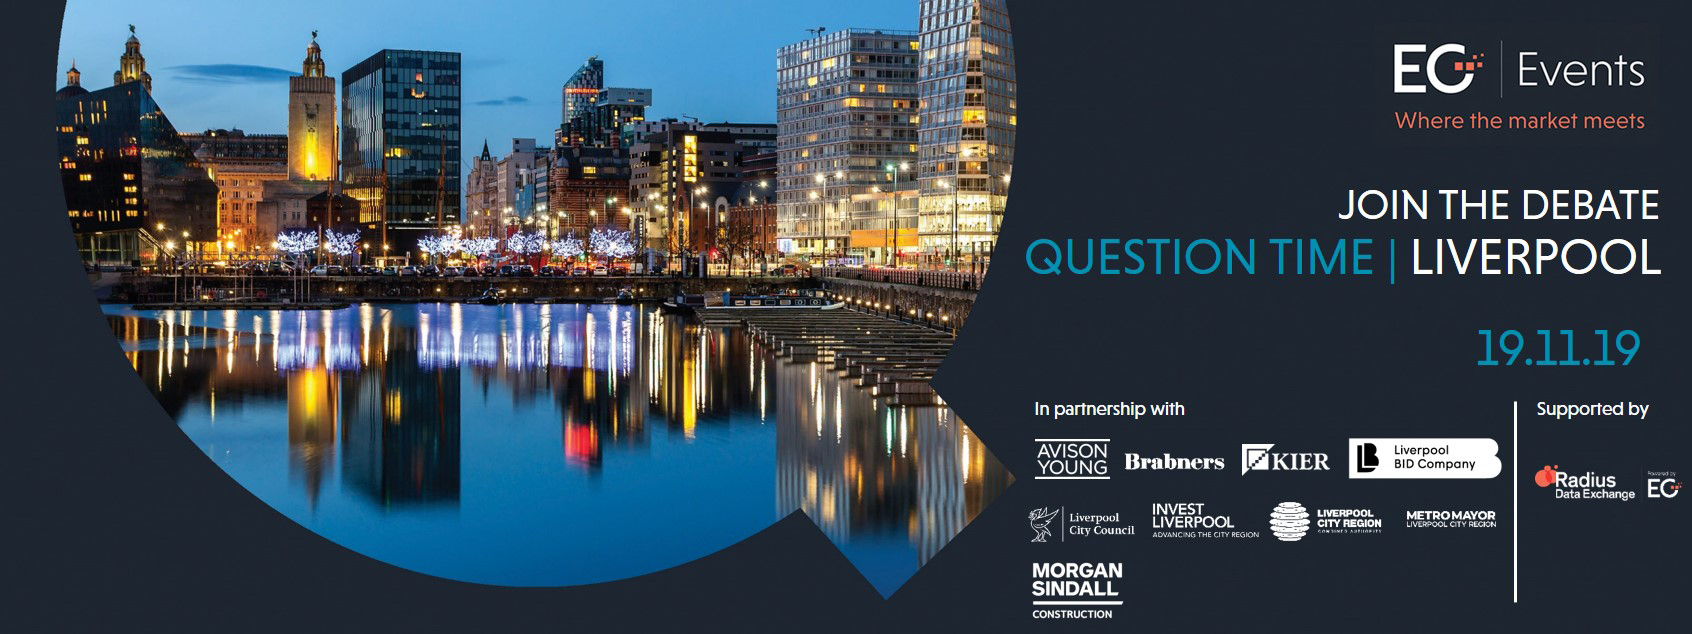 QUESTION TIME | LIVERPOOL